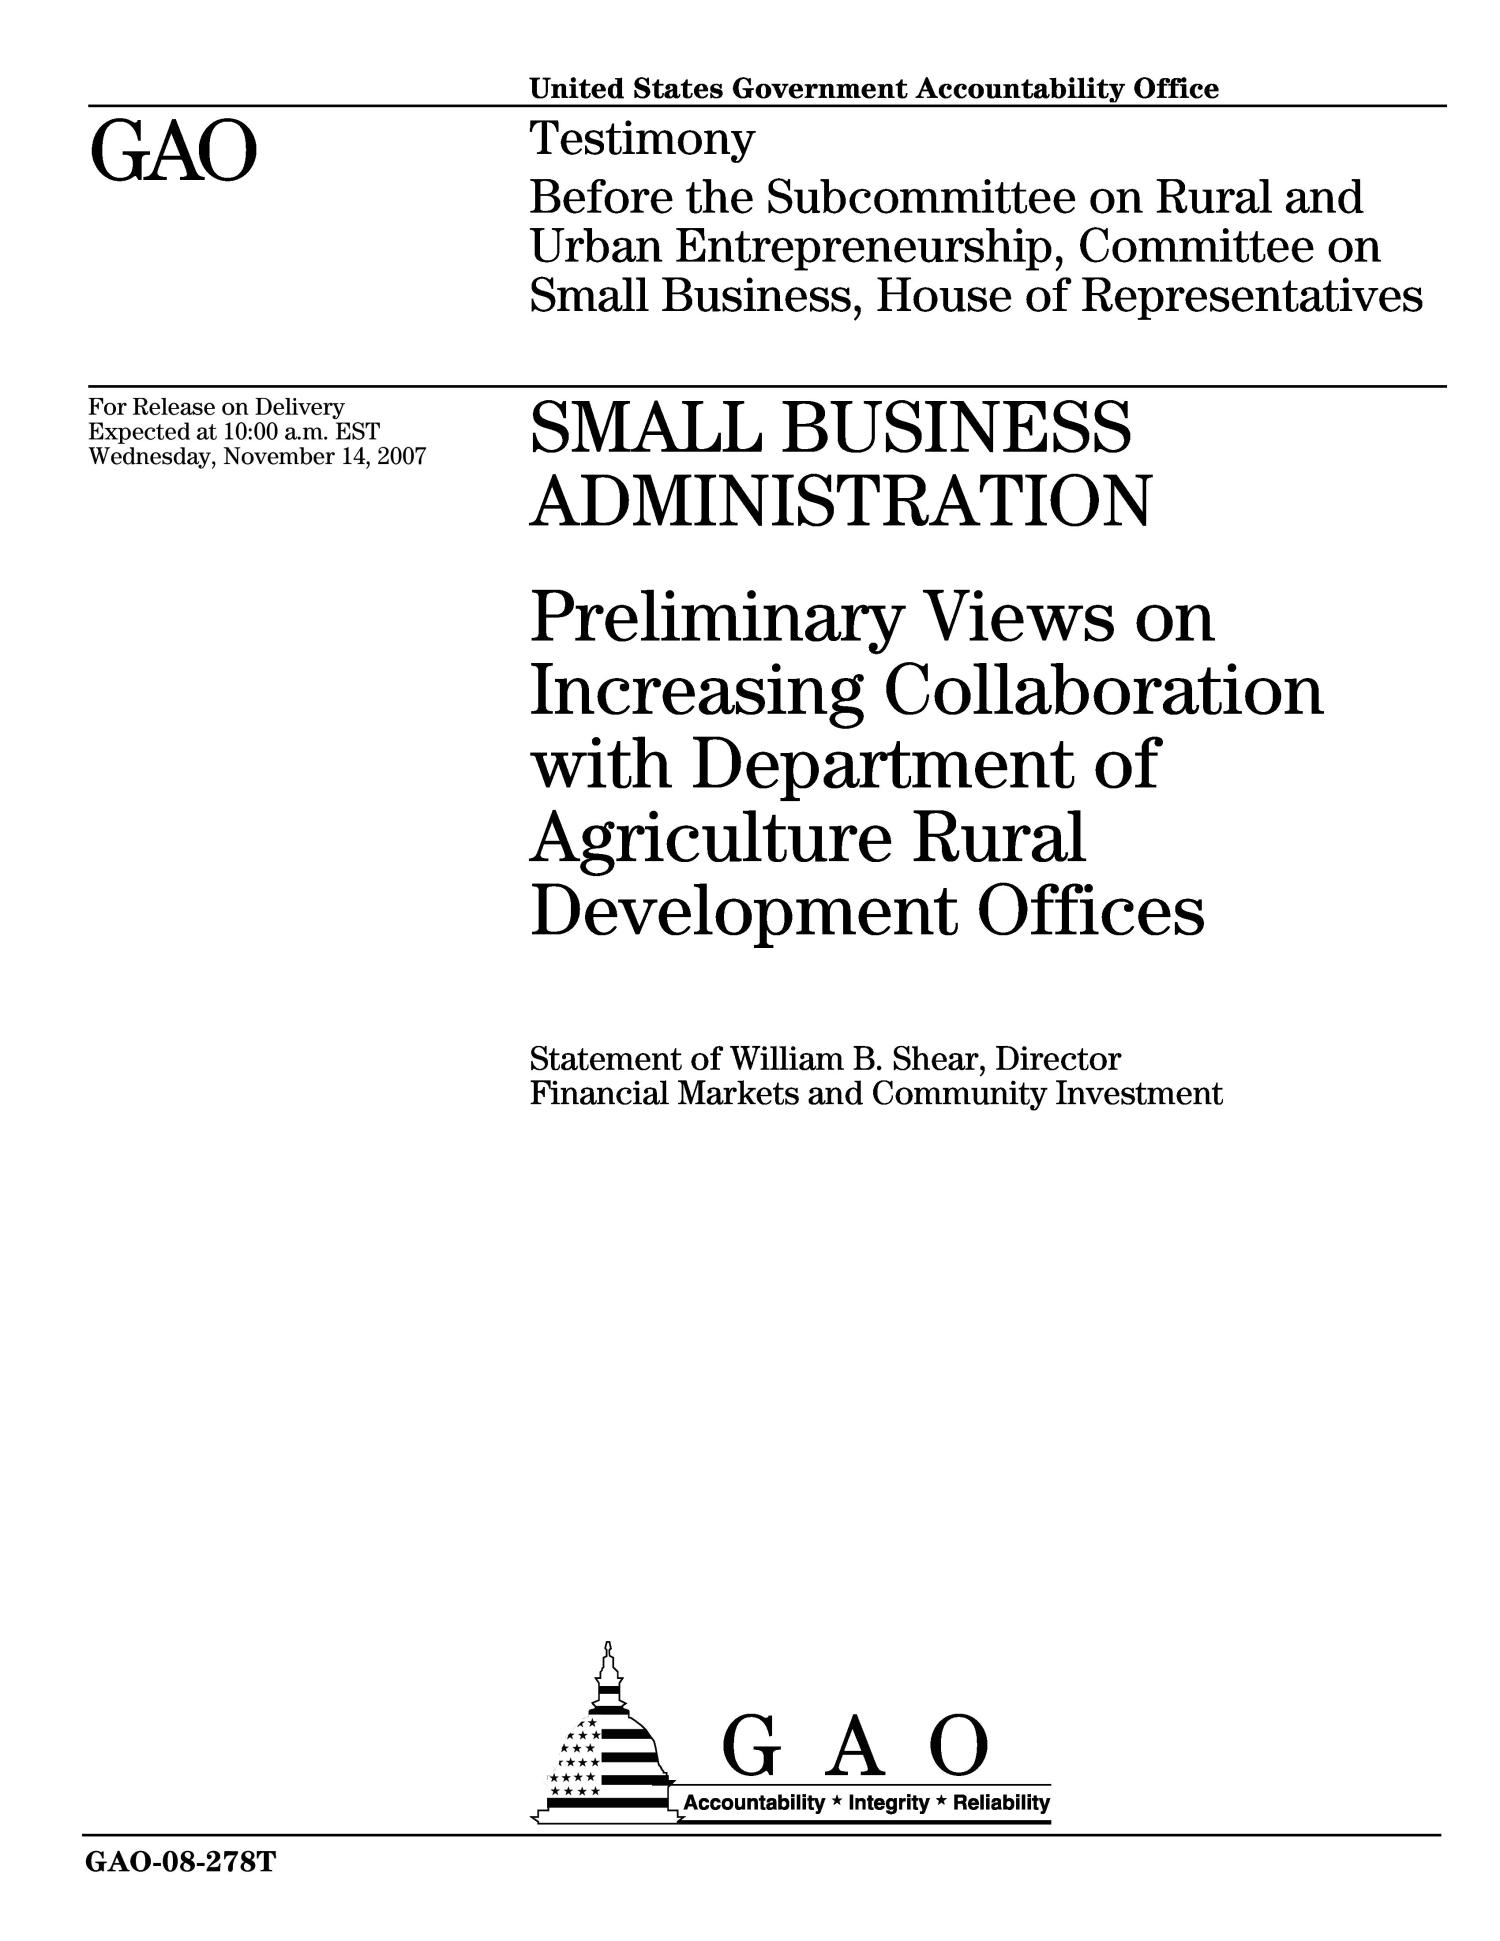 Small Business Administration: Preliminary Views on Increasing Collaboration with Department of Agriculture Rural Development Offices                                                                                                      [Sequence #]: 1 of 15